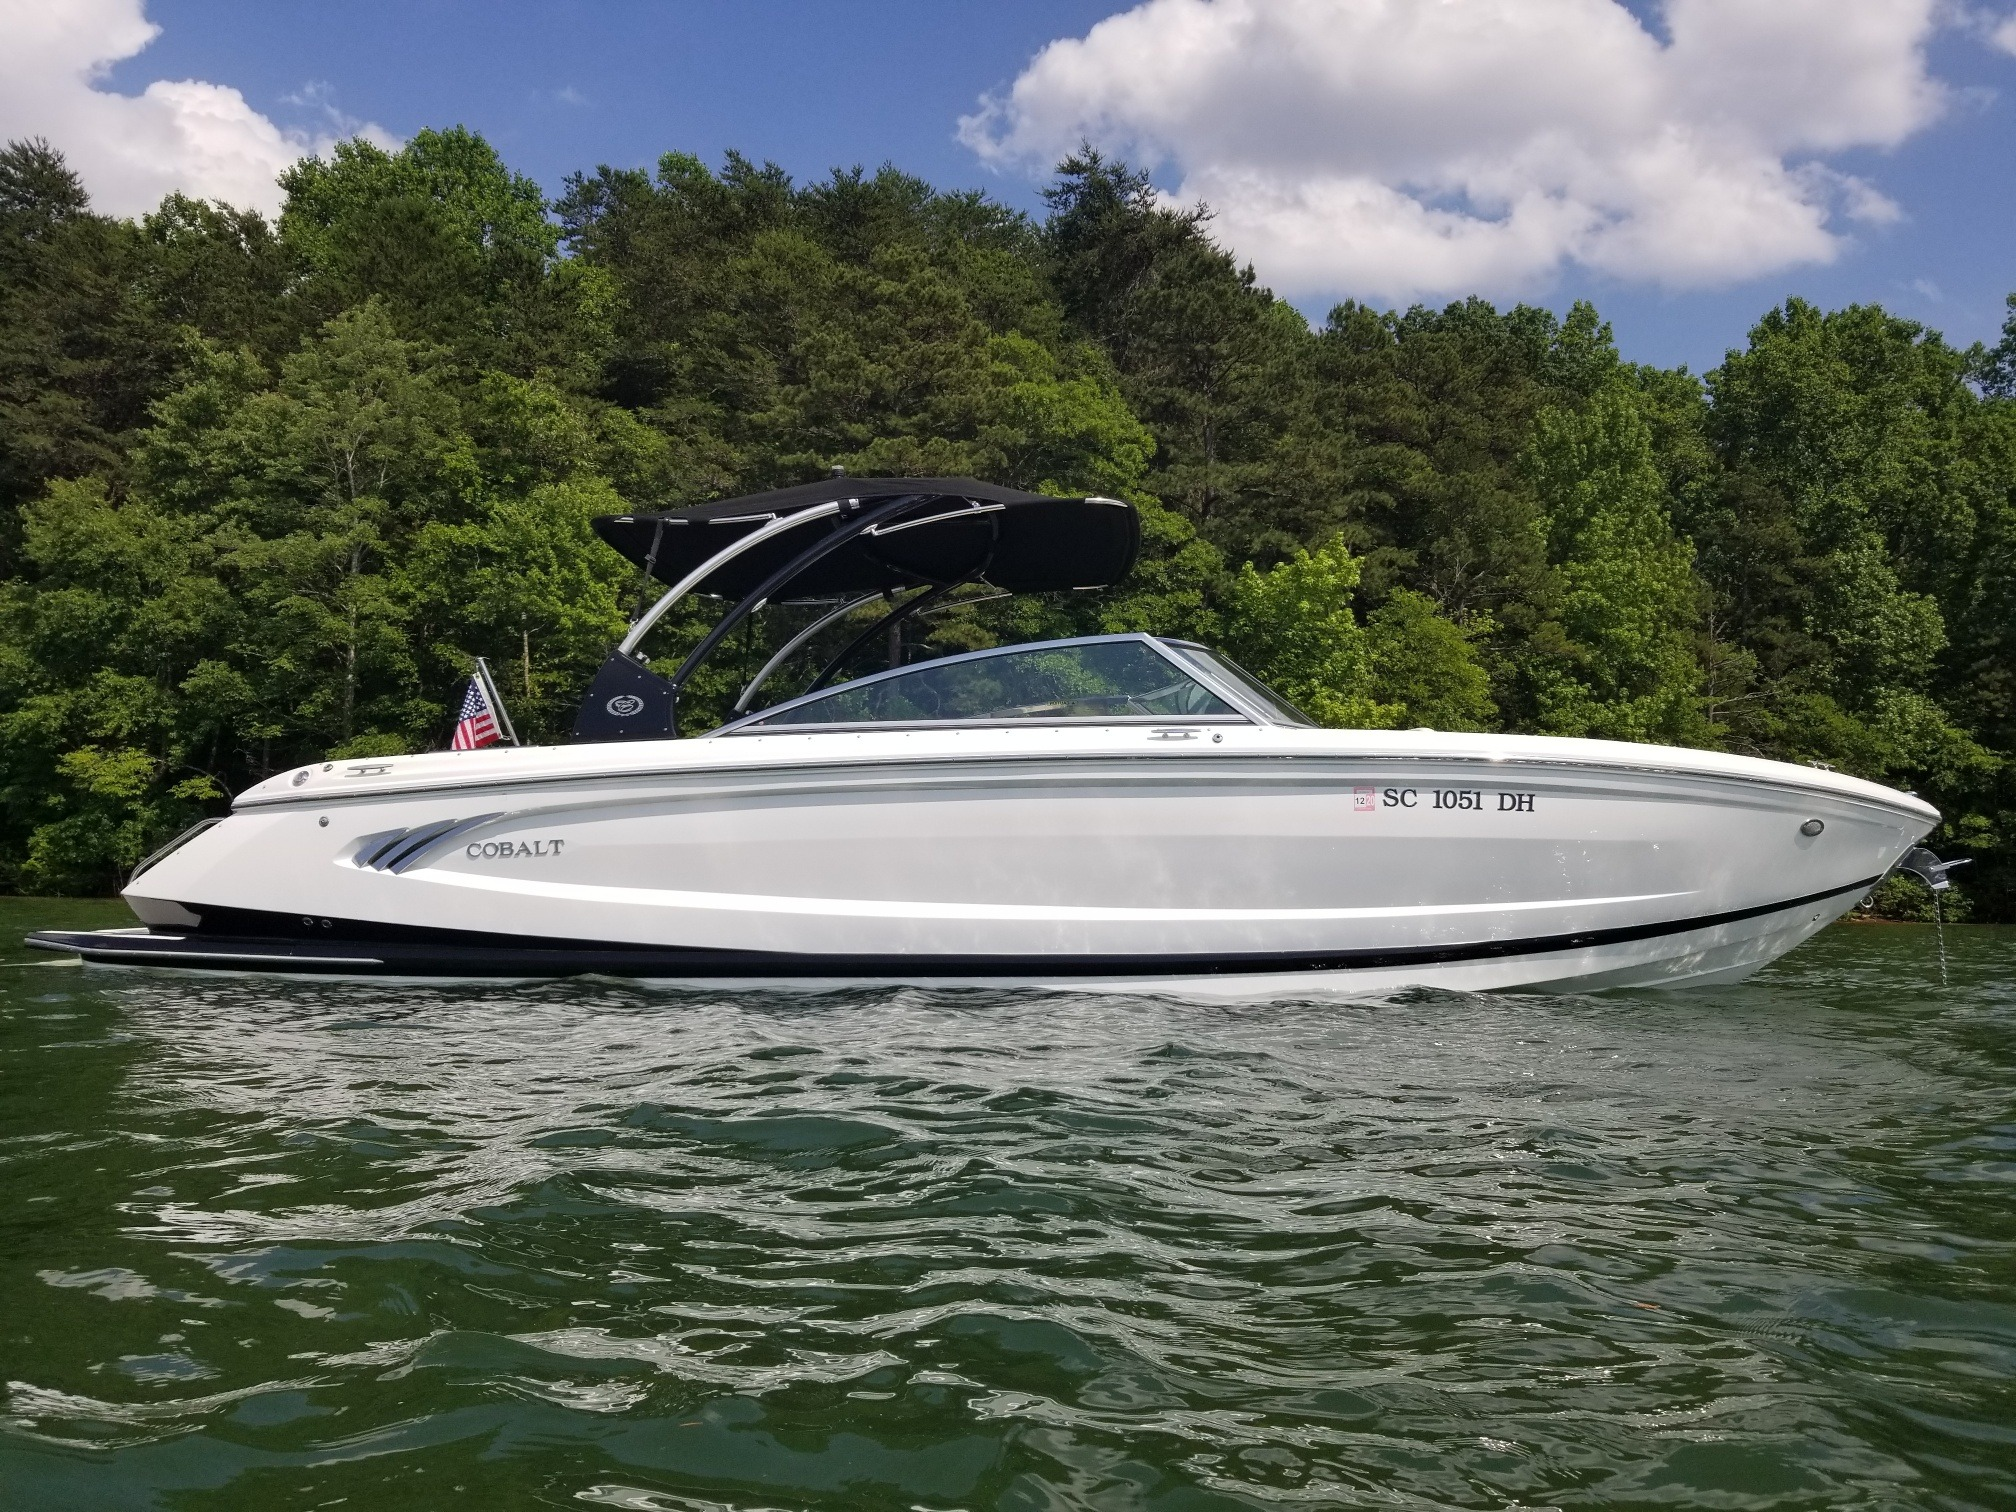 Cobalt A28 boats for sale - boats com